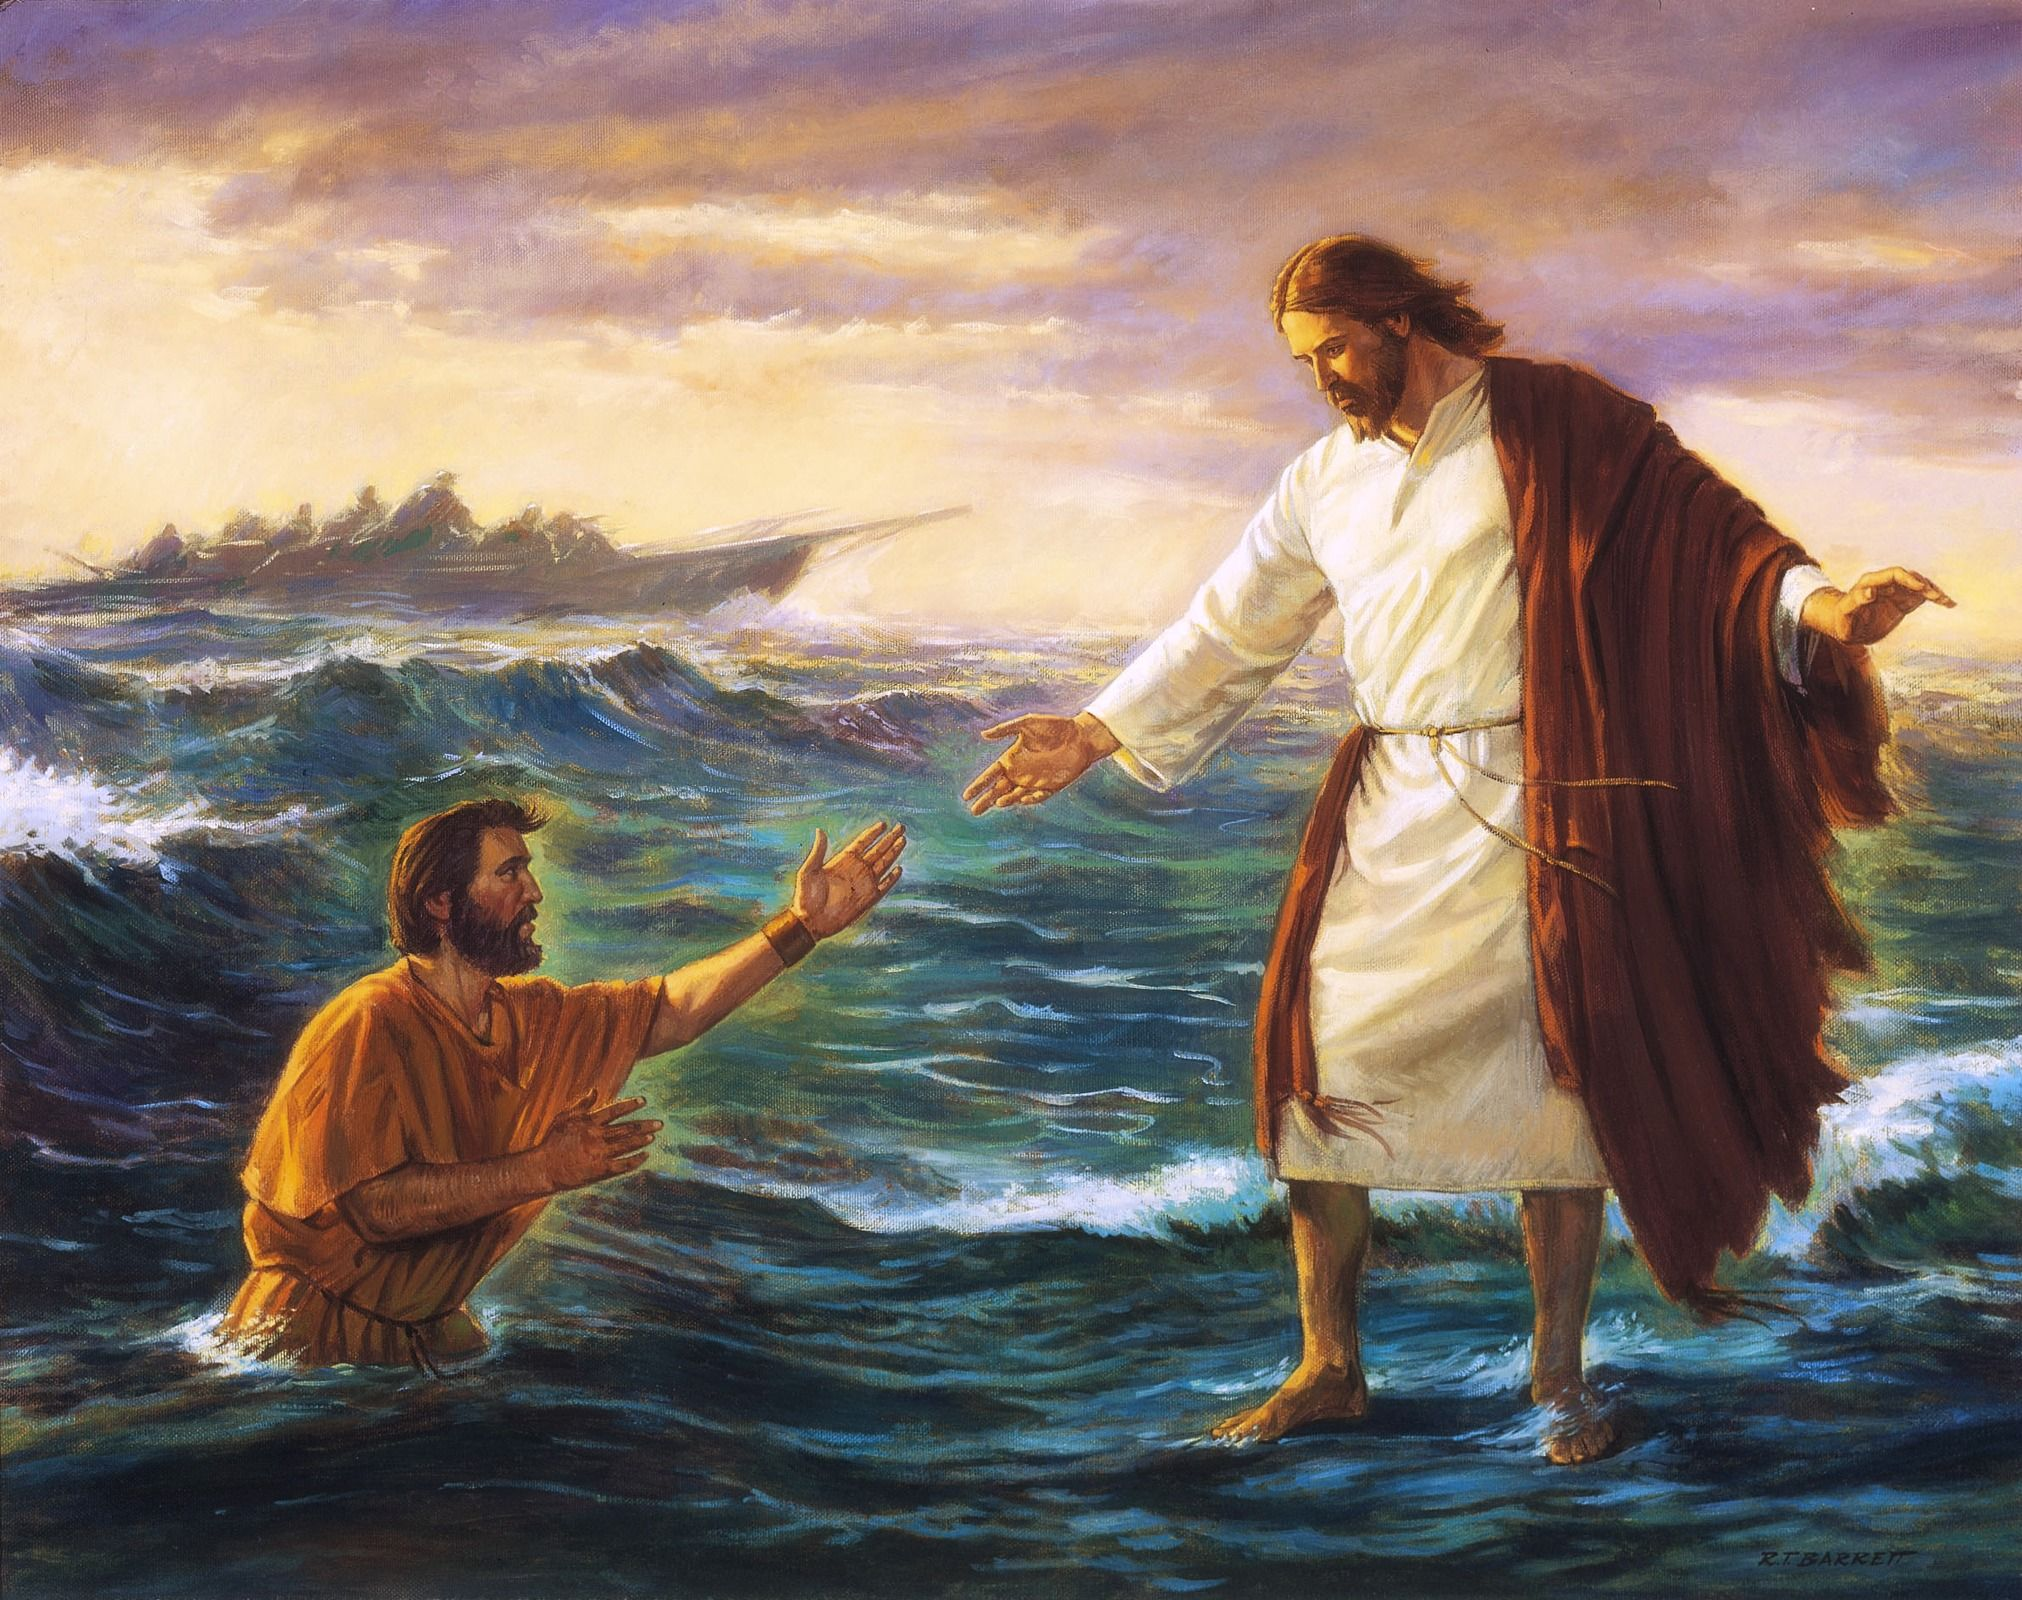 miracles of jesus on one of my all time favorite